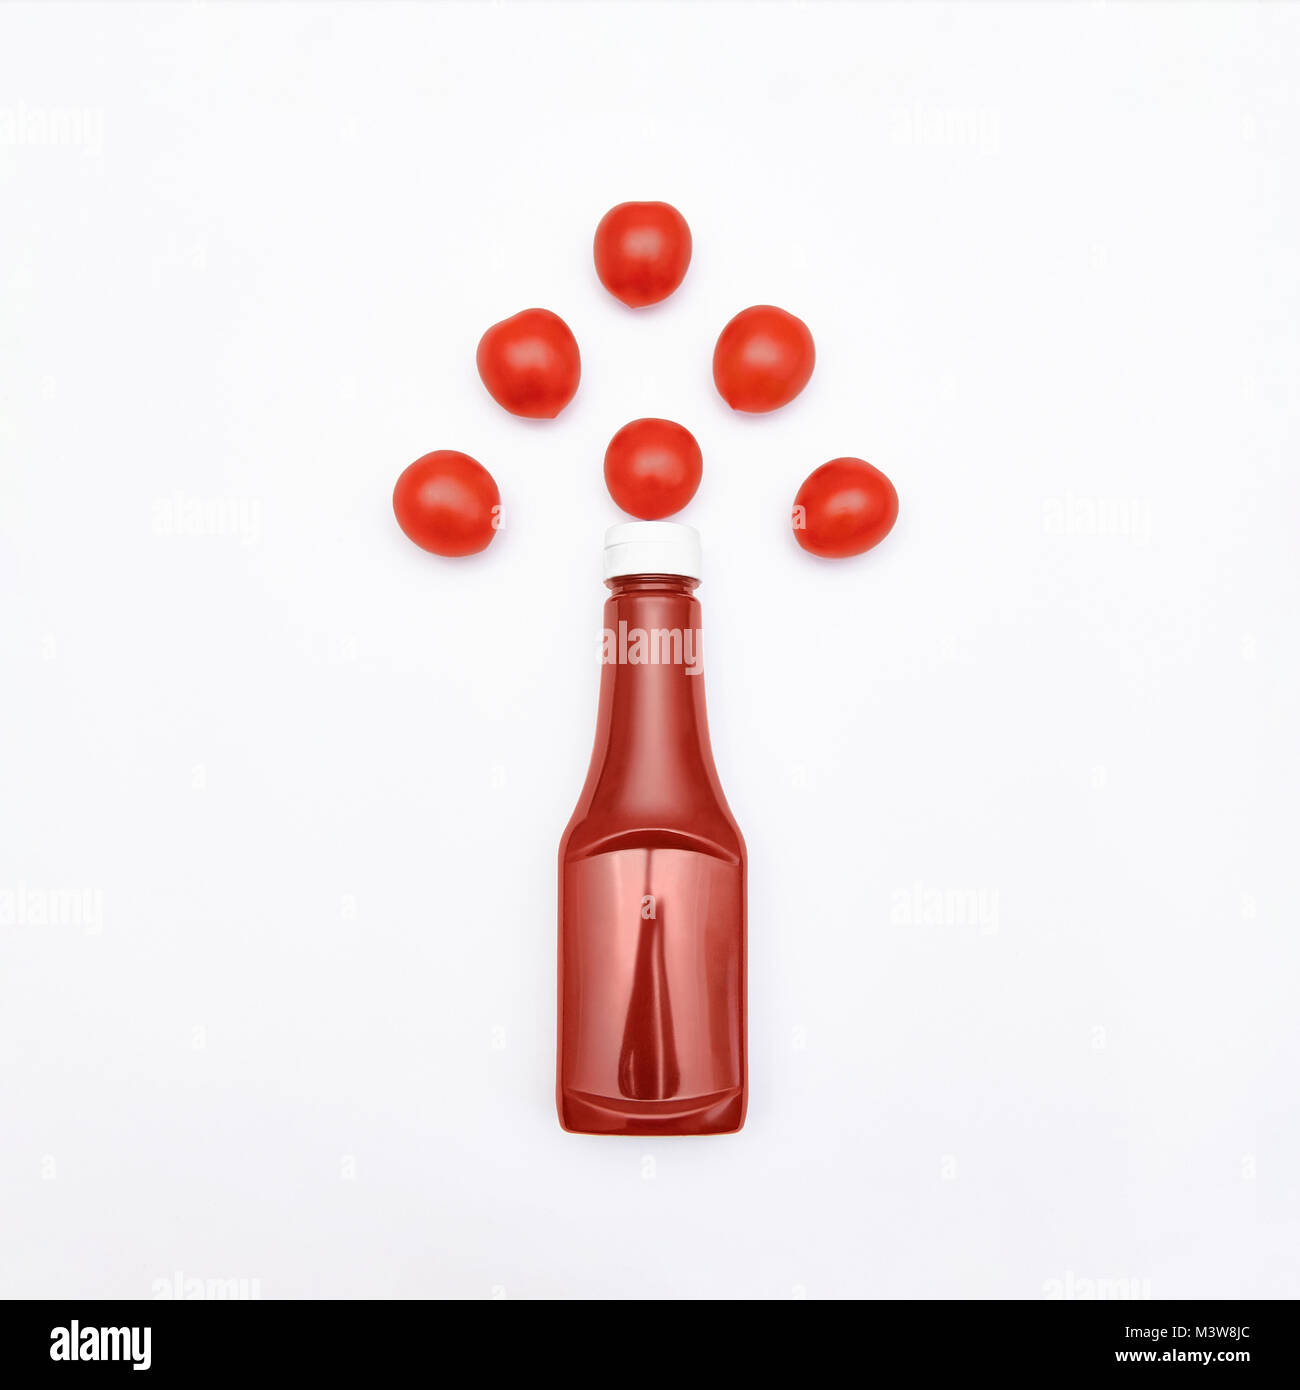 Ketchup Flat lay Bottle of ketchup is lying among juicy cherry tomatoes Photo mockup for advertising with space - Stock Image